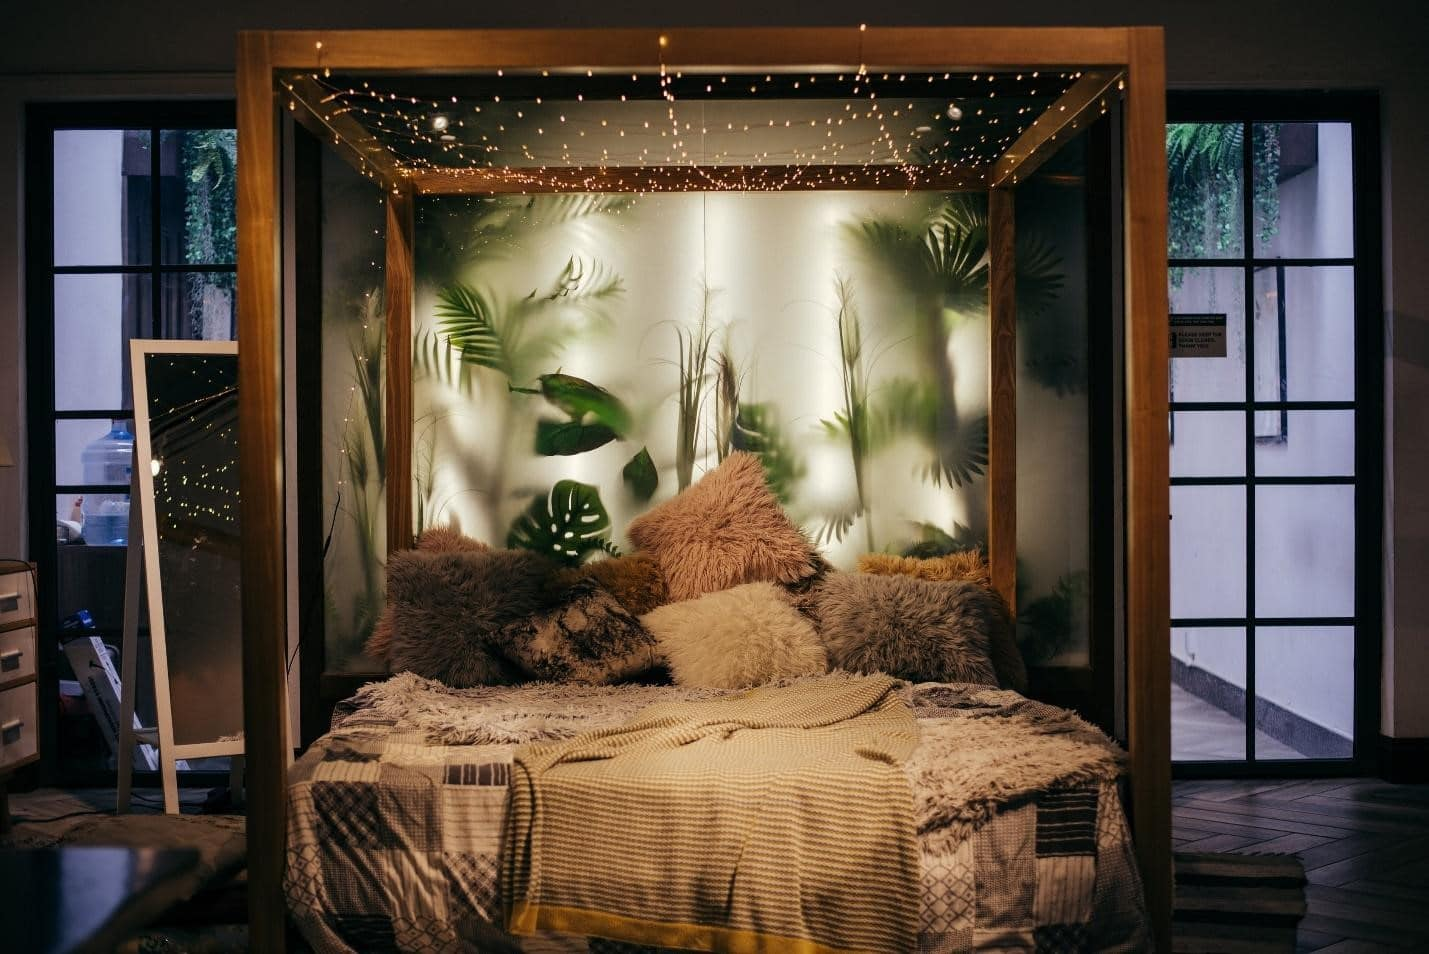 SIMPLE WAYS TO MAKE YOUR BEDROOM LOOK CLASSY